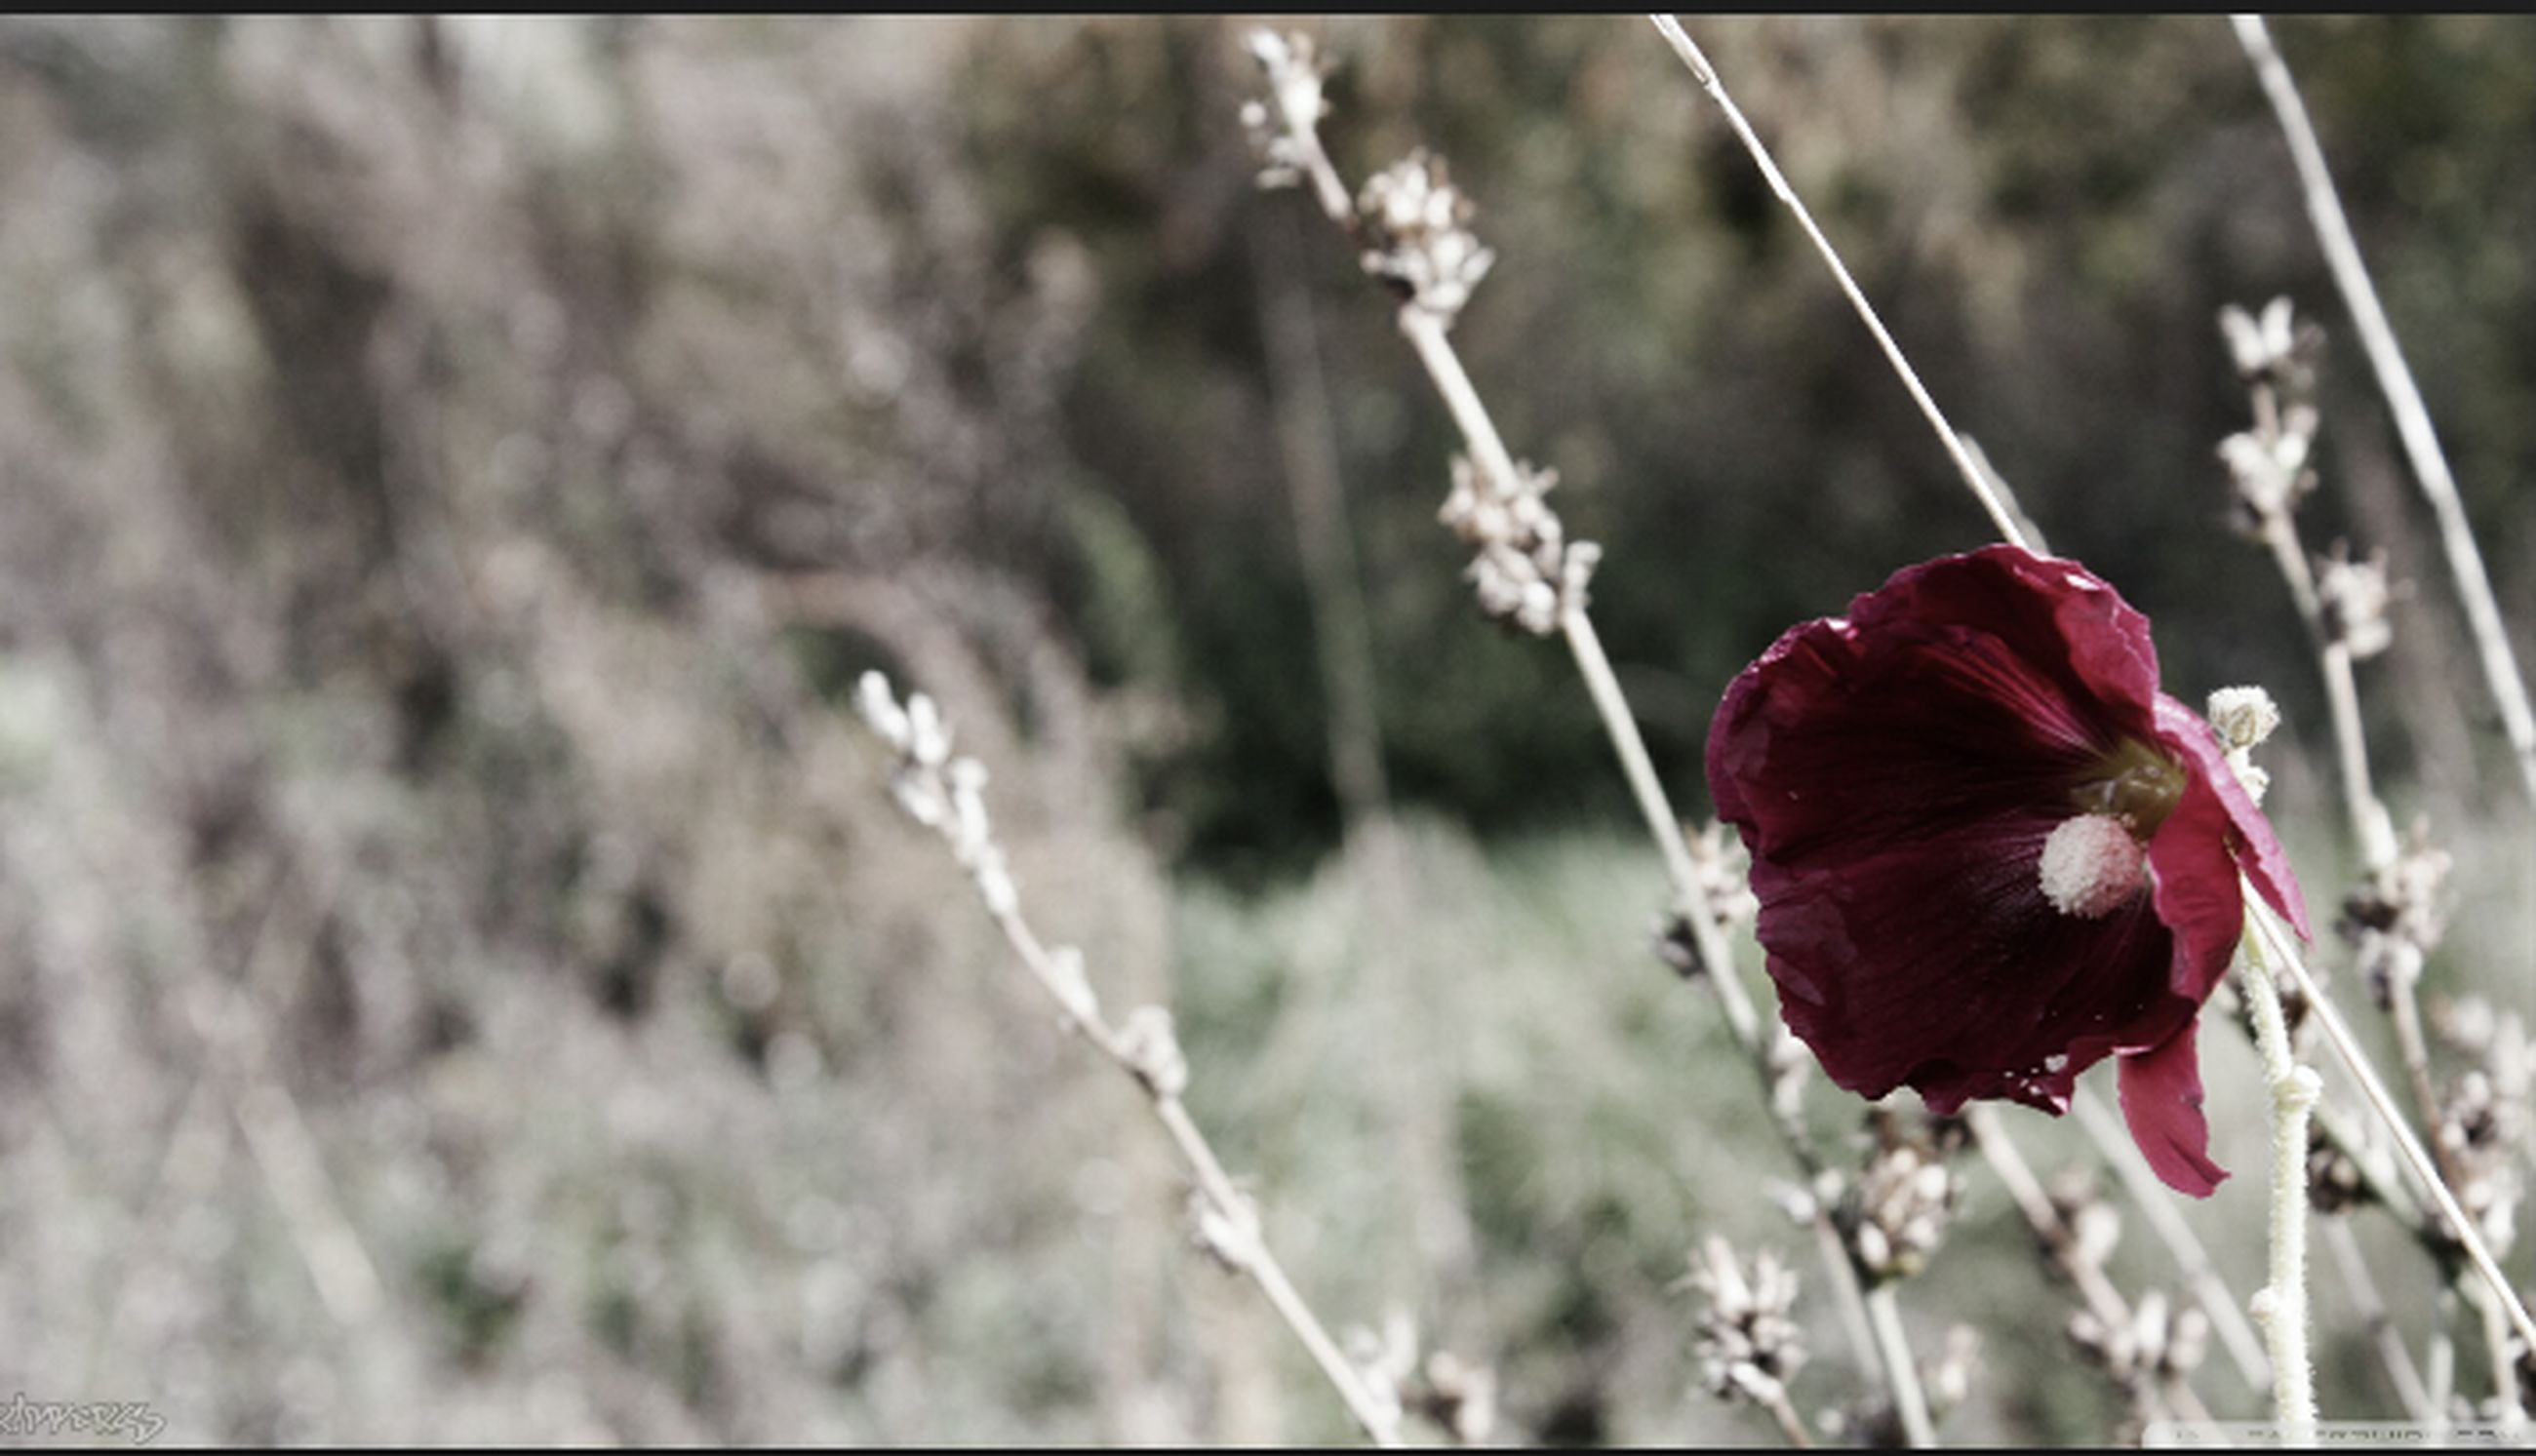 flower, focus on foreground, red, close-up, plant, growth, fragility, nature, freshness, stem, beauty in nature, selective focus, day, outdoors, no people, flower head, petal, branch, blooming, auto post production filter